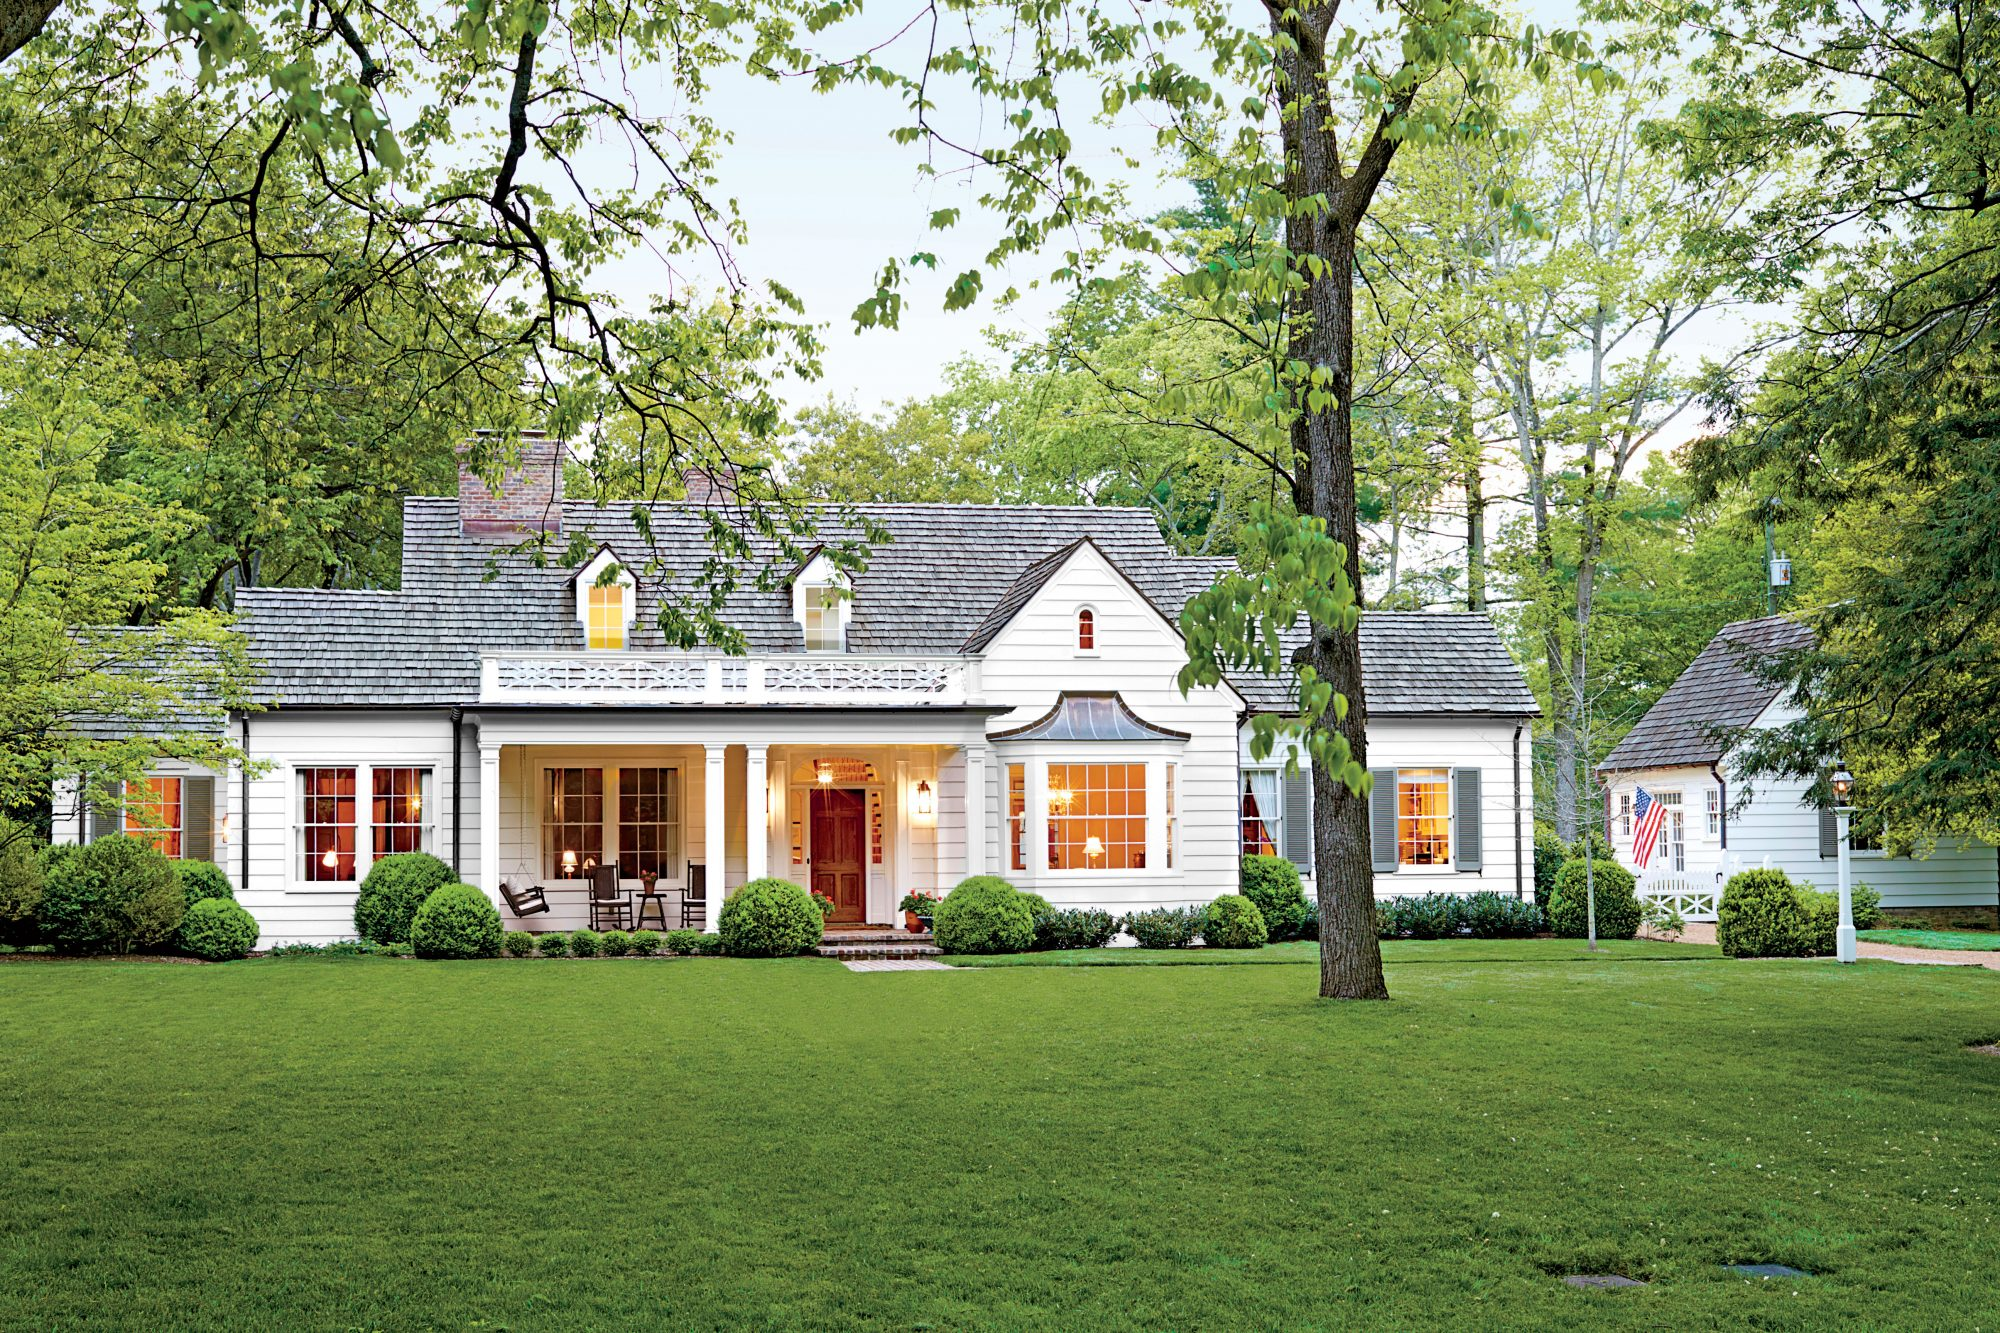 Picturesque Tennessee Farmhouse